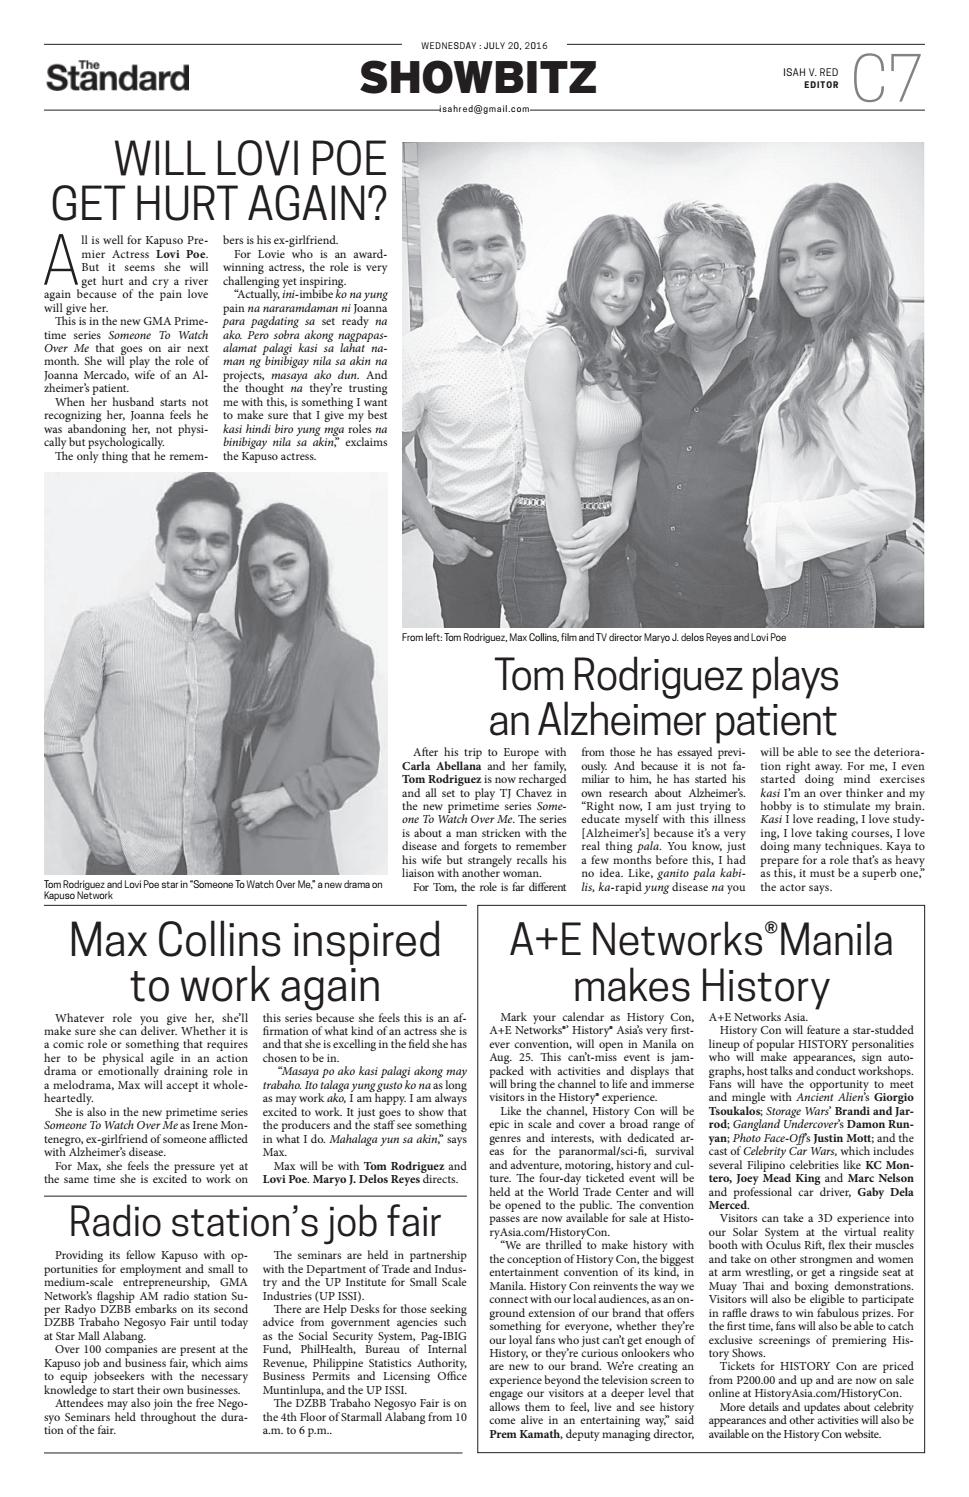 The Standard - 2016 July 20 - Wednesday by Manila Standard